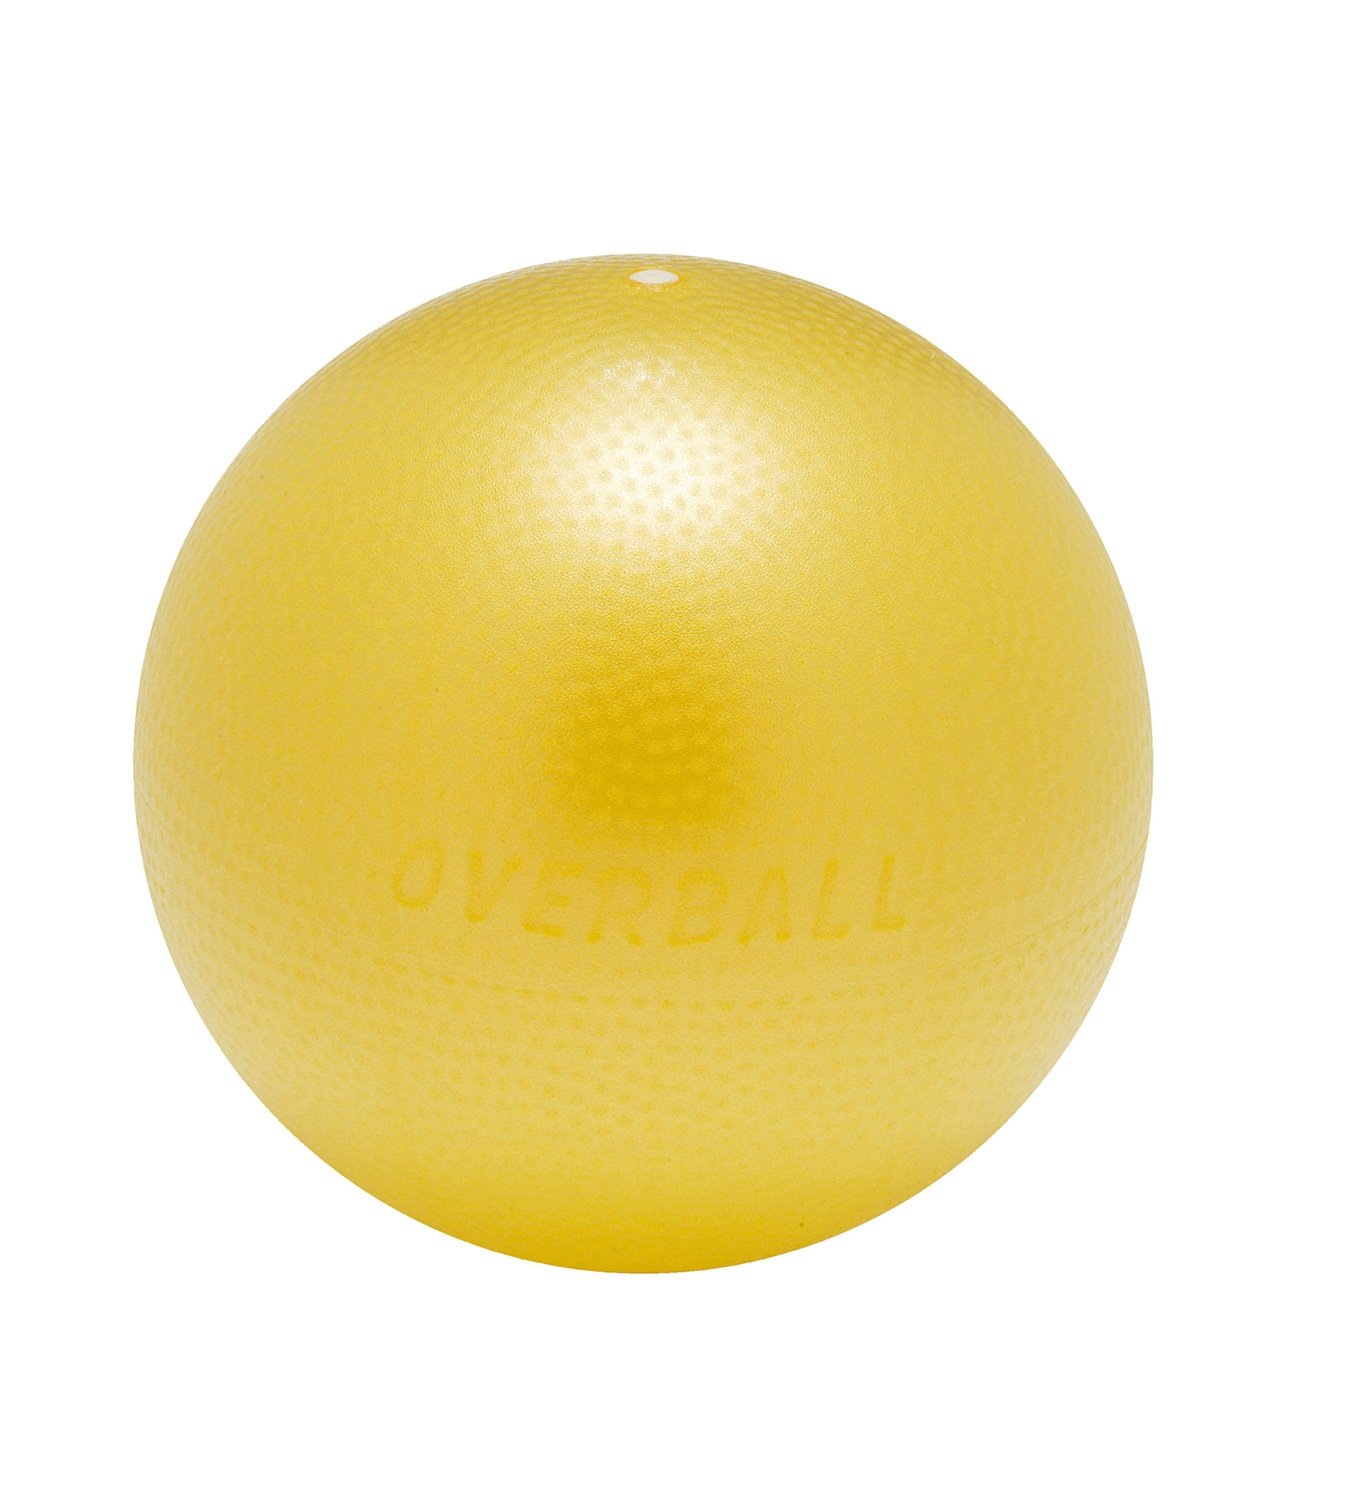 Sportime OverBall Exercise and Therapy Ball, Small, 23 cms , 9 Inches, colors may vary School Specialty 8011